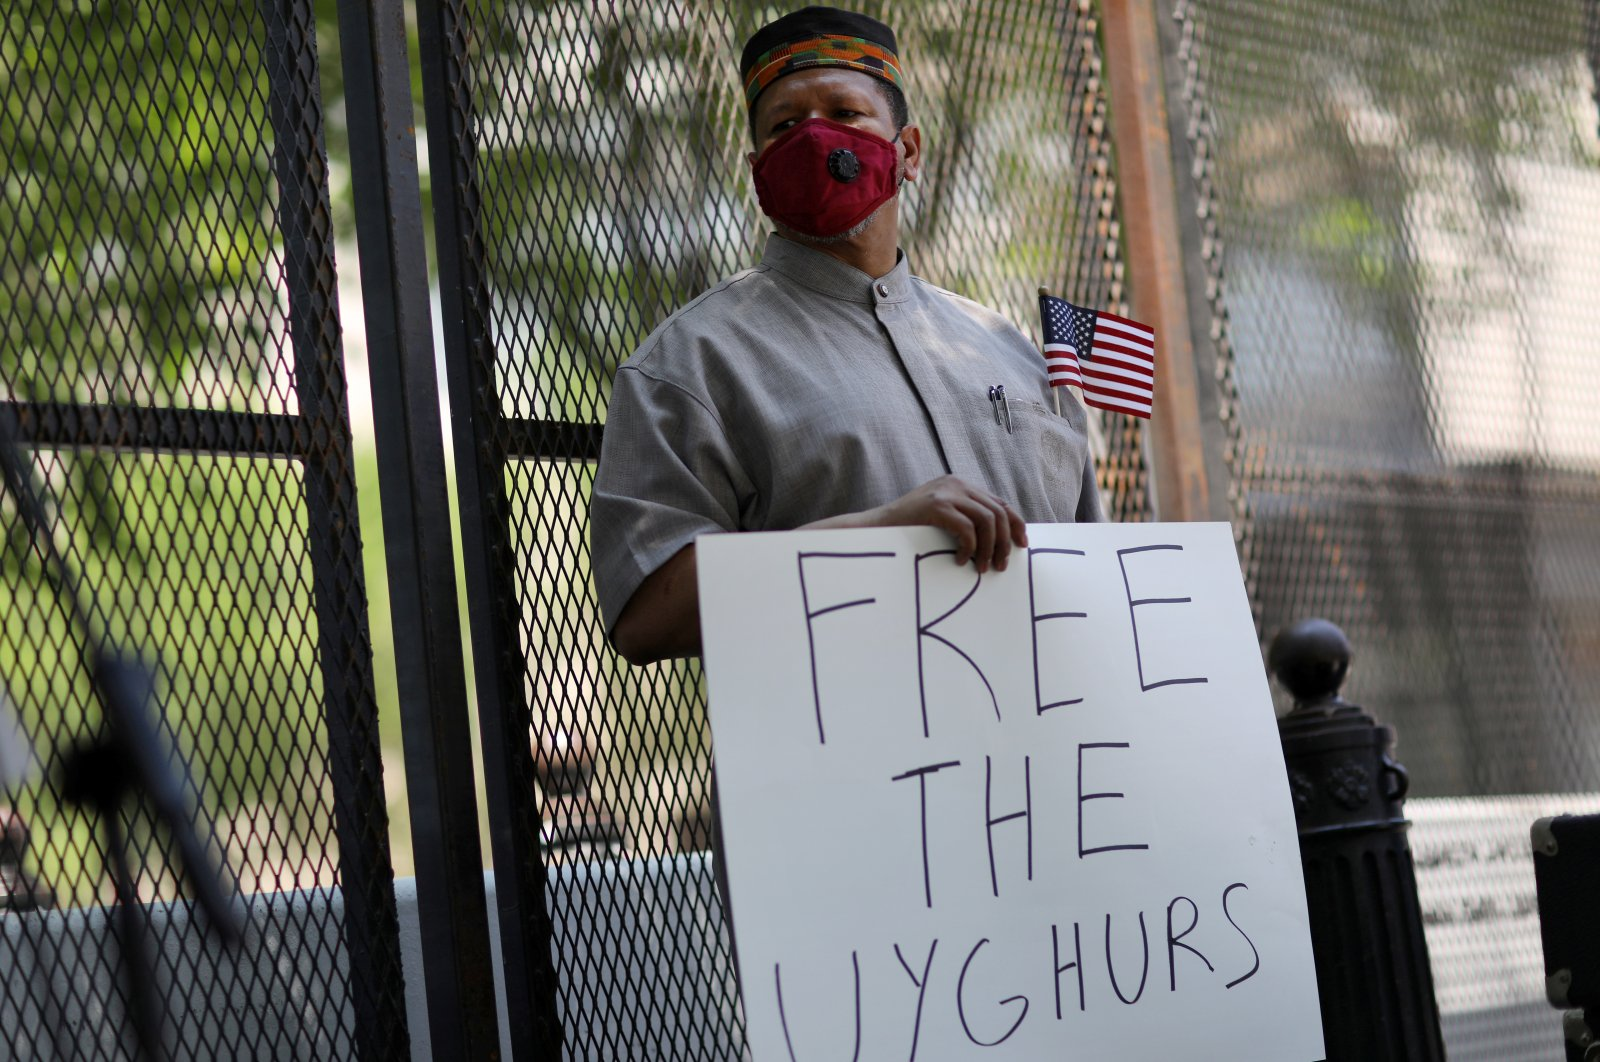 Imam Talib Shareef waits to speak as he gathers with others near the White House to call on the U.S. government to respond to China's alleged abuses of a Muslim ethnic minority called the Uighurs, near the White House in Washington, U.S. July 3, 2020. (Reuters Photo)